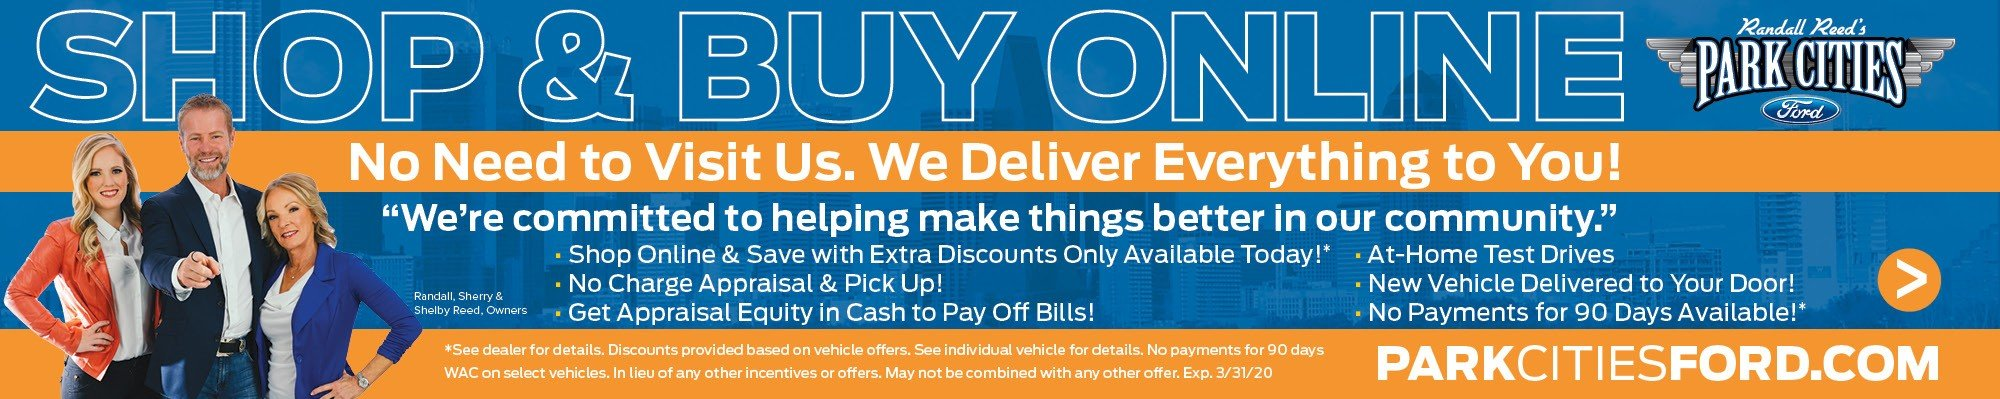 Shop & Buy Online at Park Cities Ford of Dallas - Your Dallas Ford Dealer